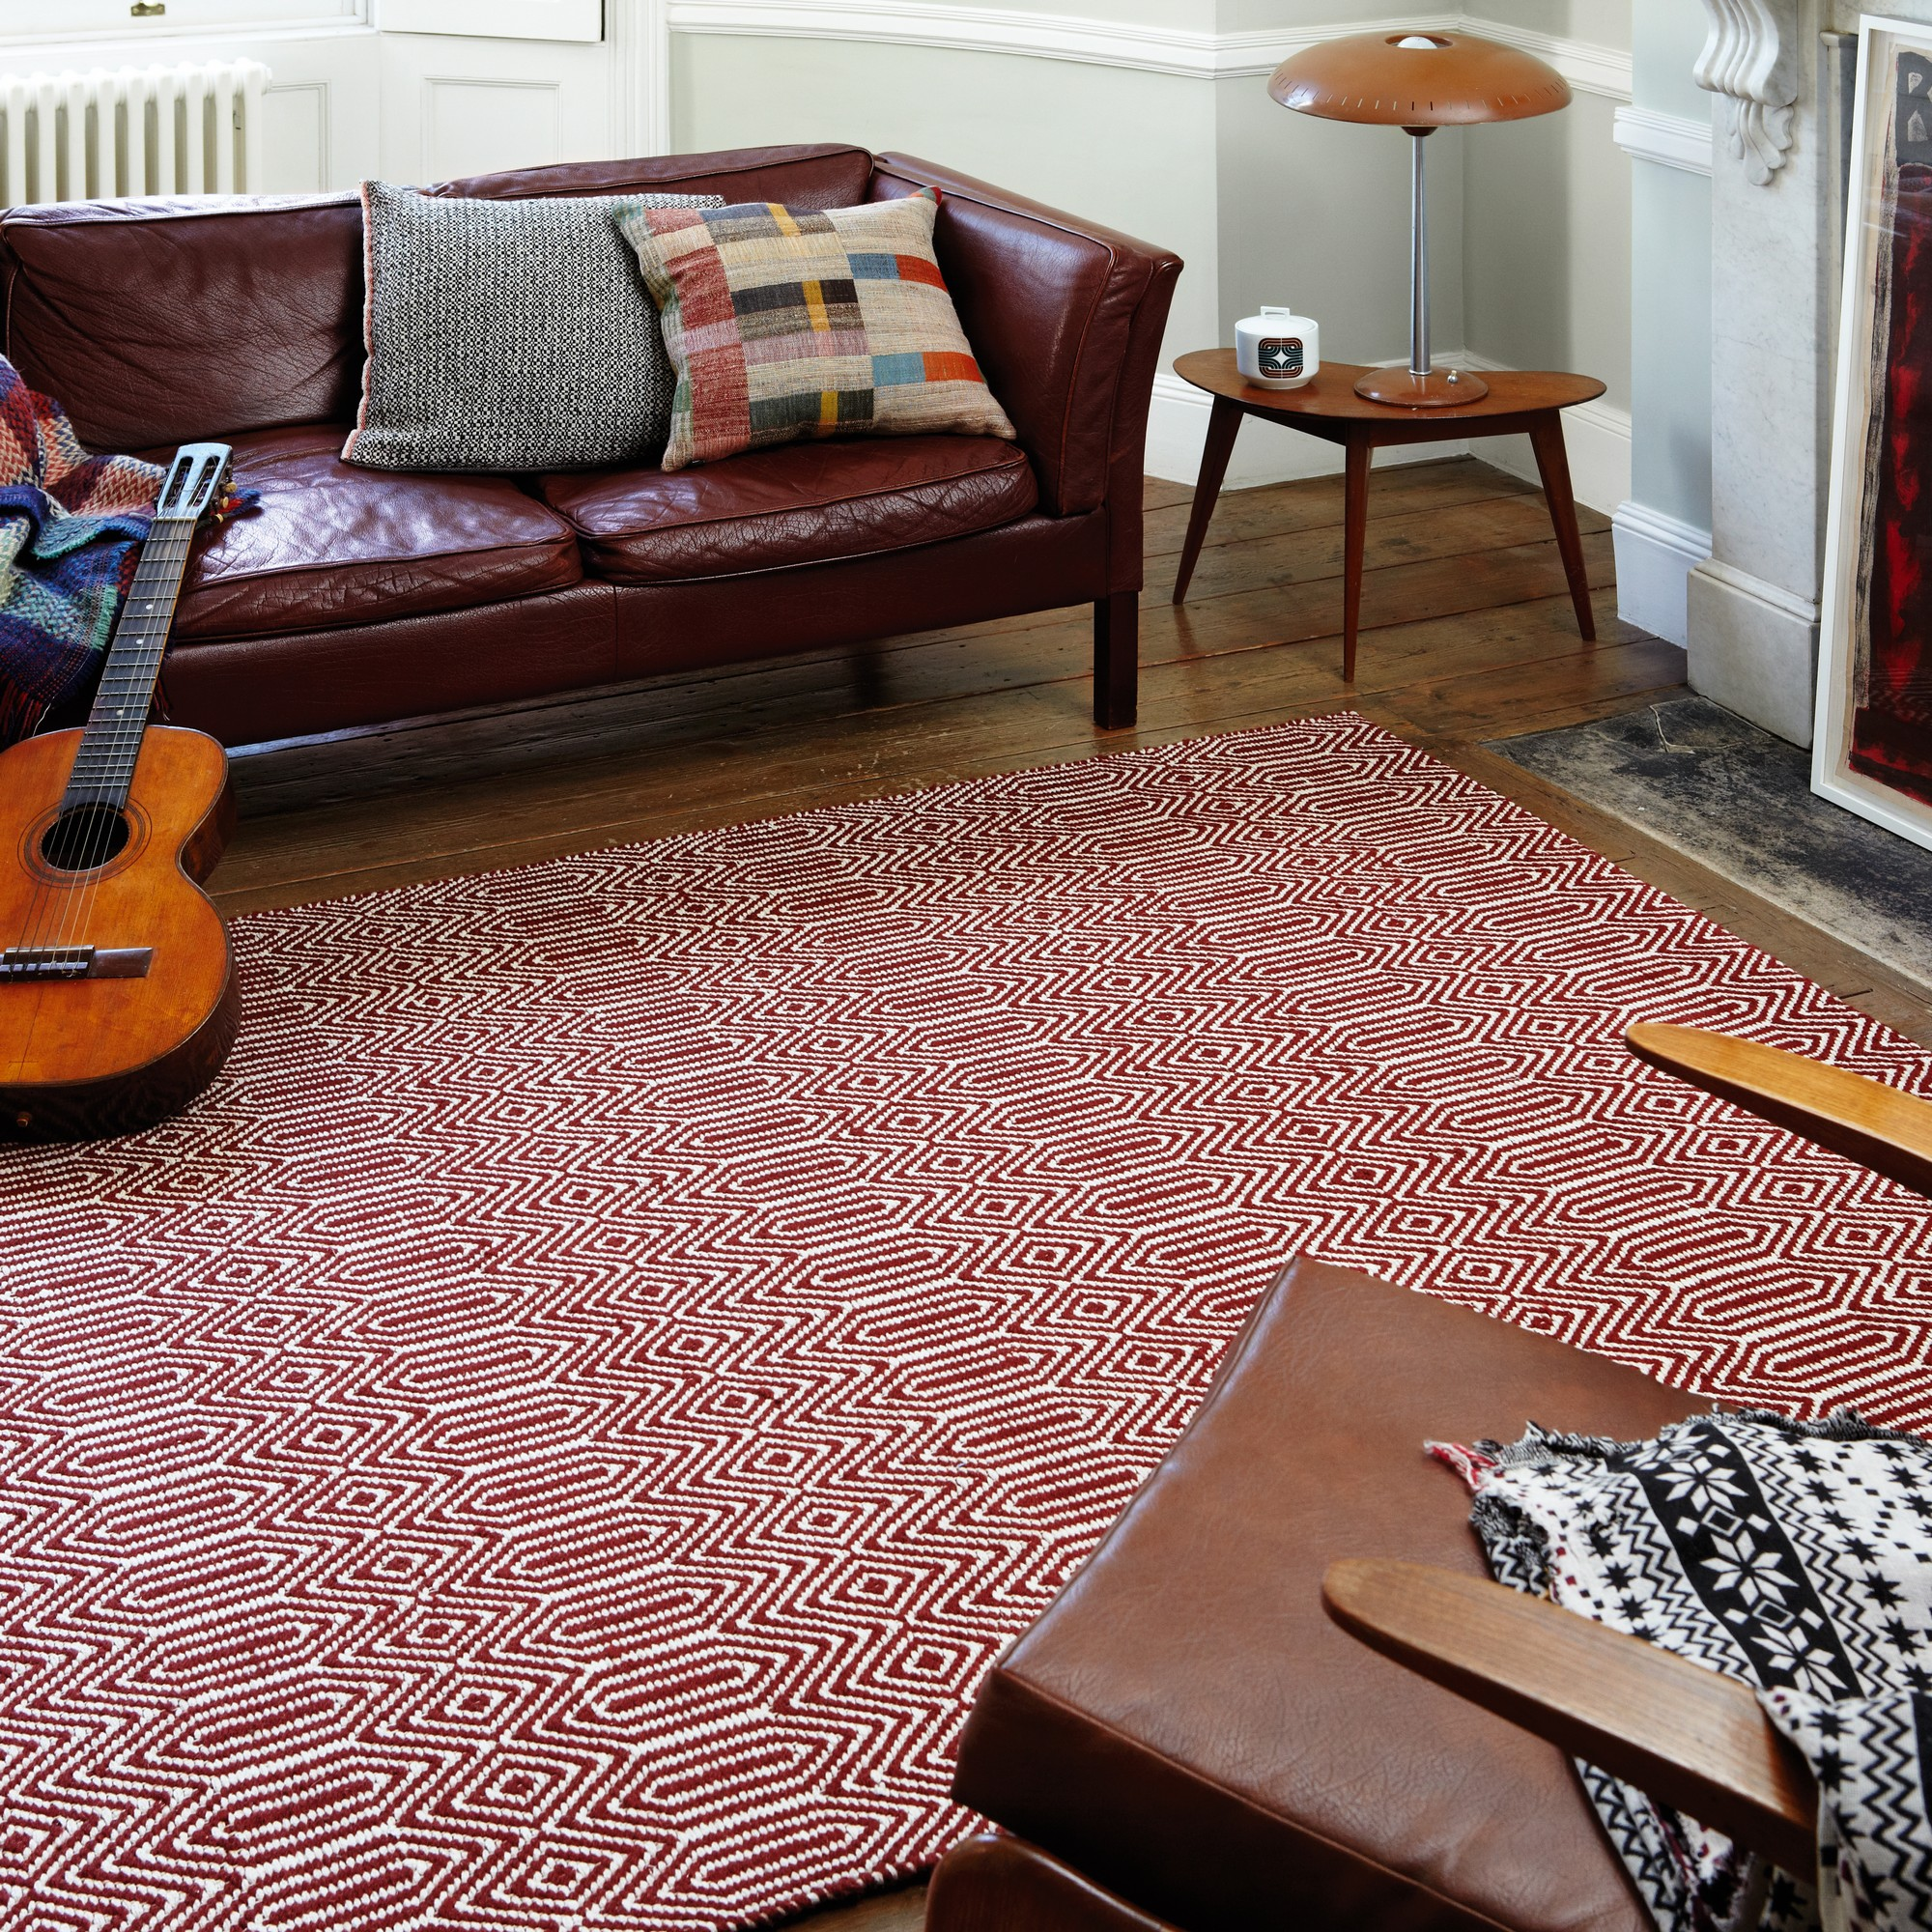 Sloan Rugs in Marsala Red